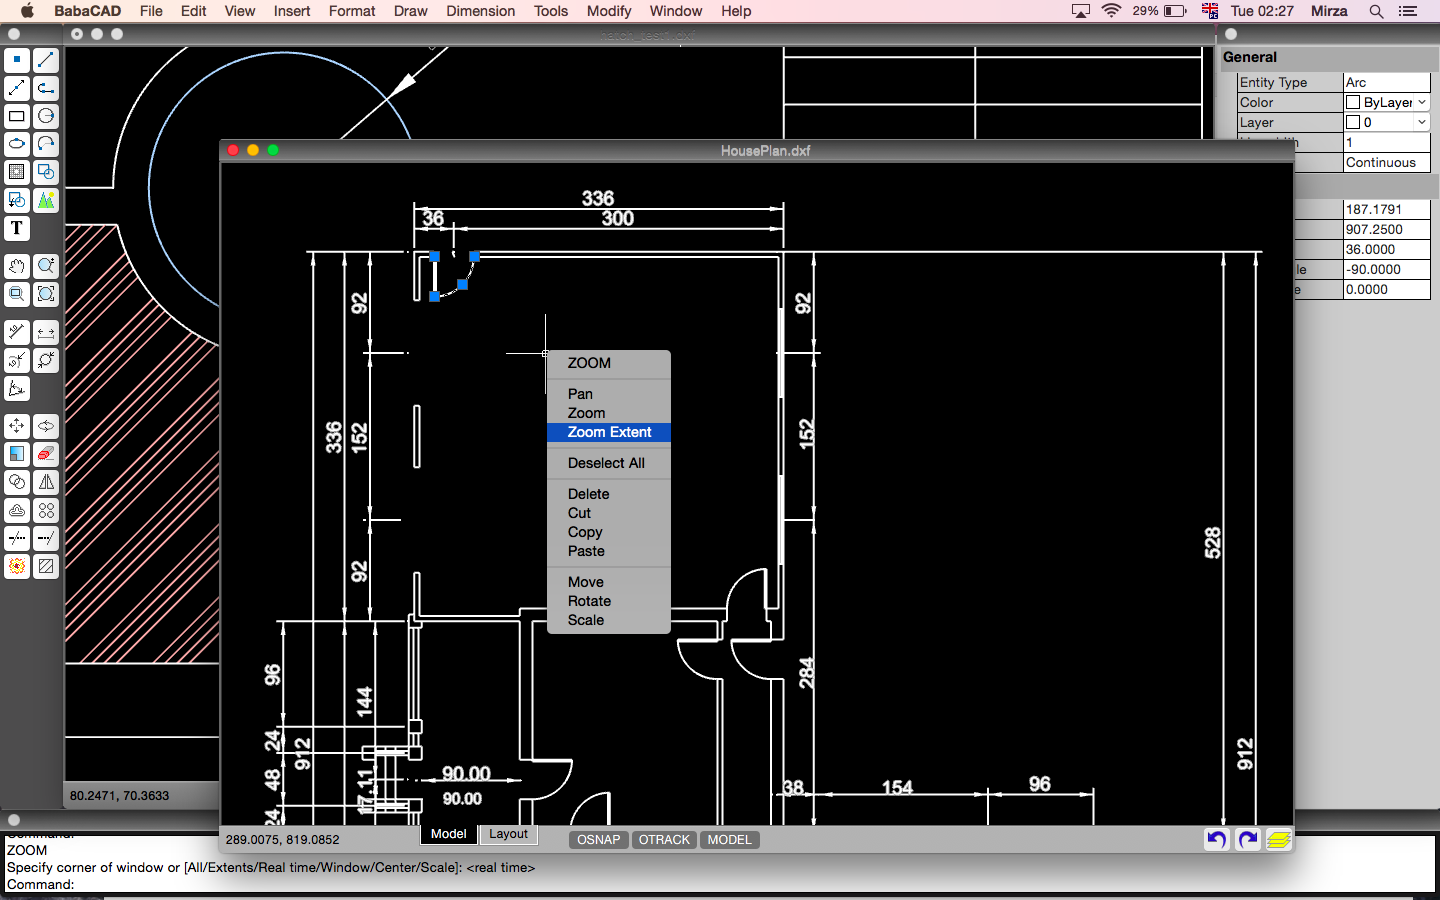 Babacad free cad software for mac os for Free cad software